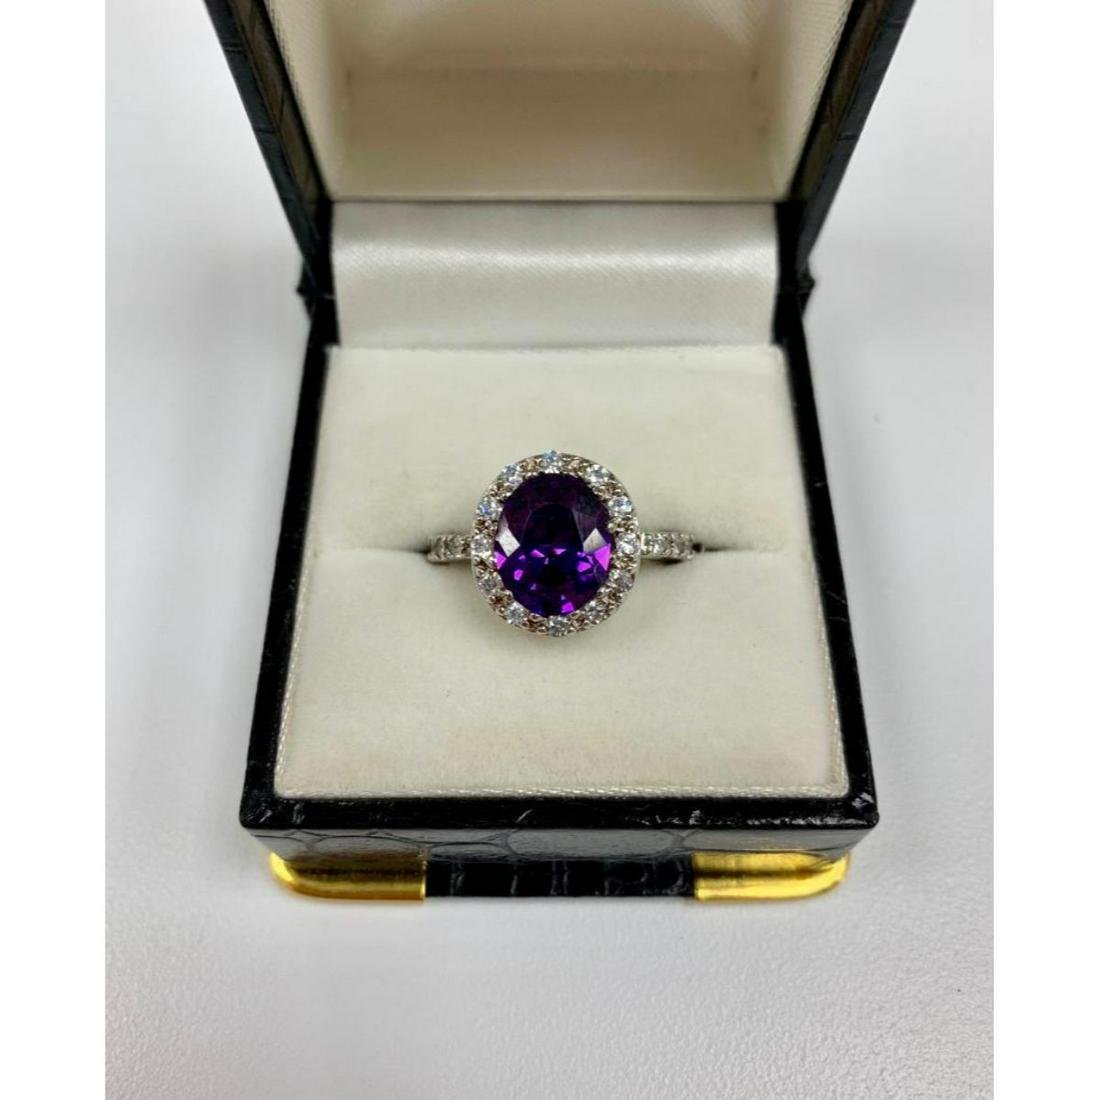 Brilliant Ladies size 6 Amethyst, Sterling Silver Ring